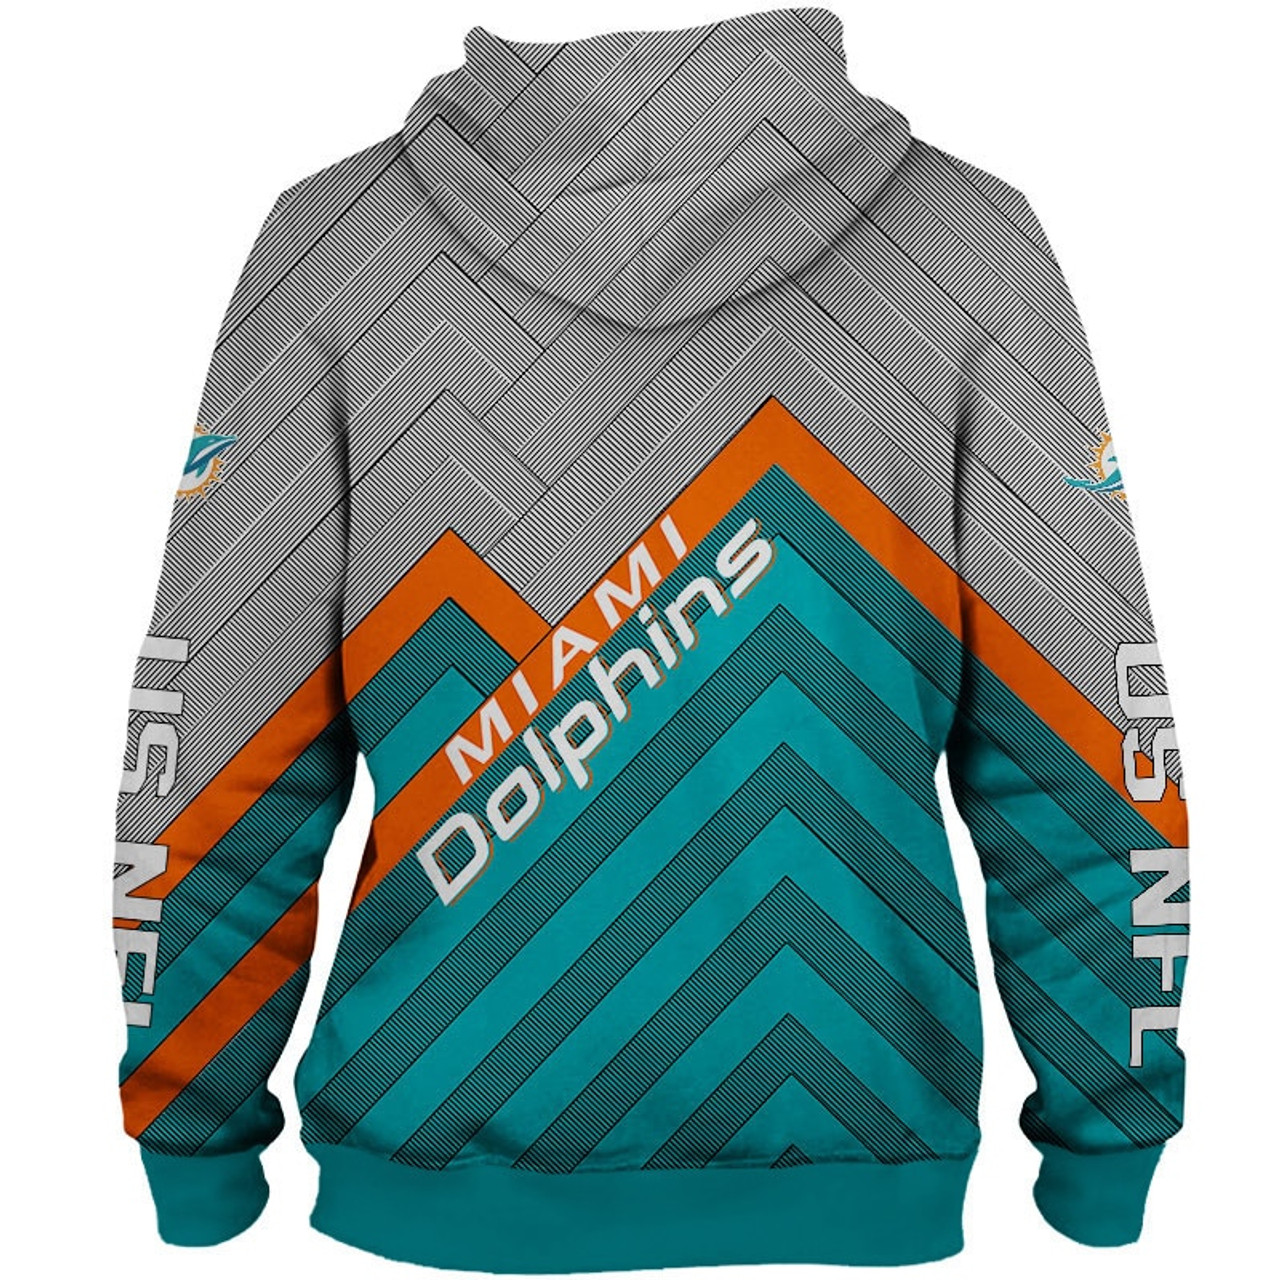 buy popular 147ee eac1e **(NEW-OFFICIAL-N.F.L.MIAMI-DOLPHINS-PULLOVER-HOODIES/3D-CUSTOM-DOLPHINS-LOGOS  & OFFICIAL-DOLPHINS-TEAM-COLORS/NICE-3D-DETAILED-GRAPHIC-PRINTED-DOUBLE...